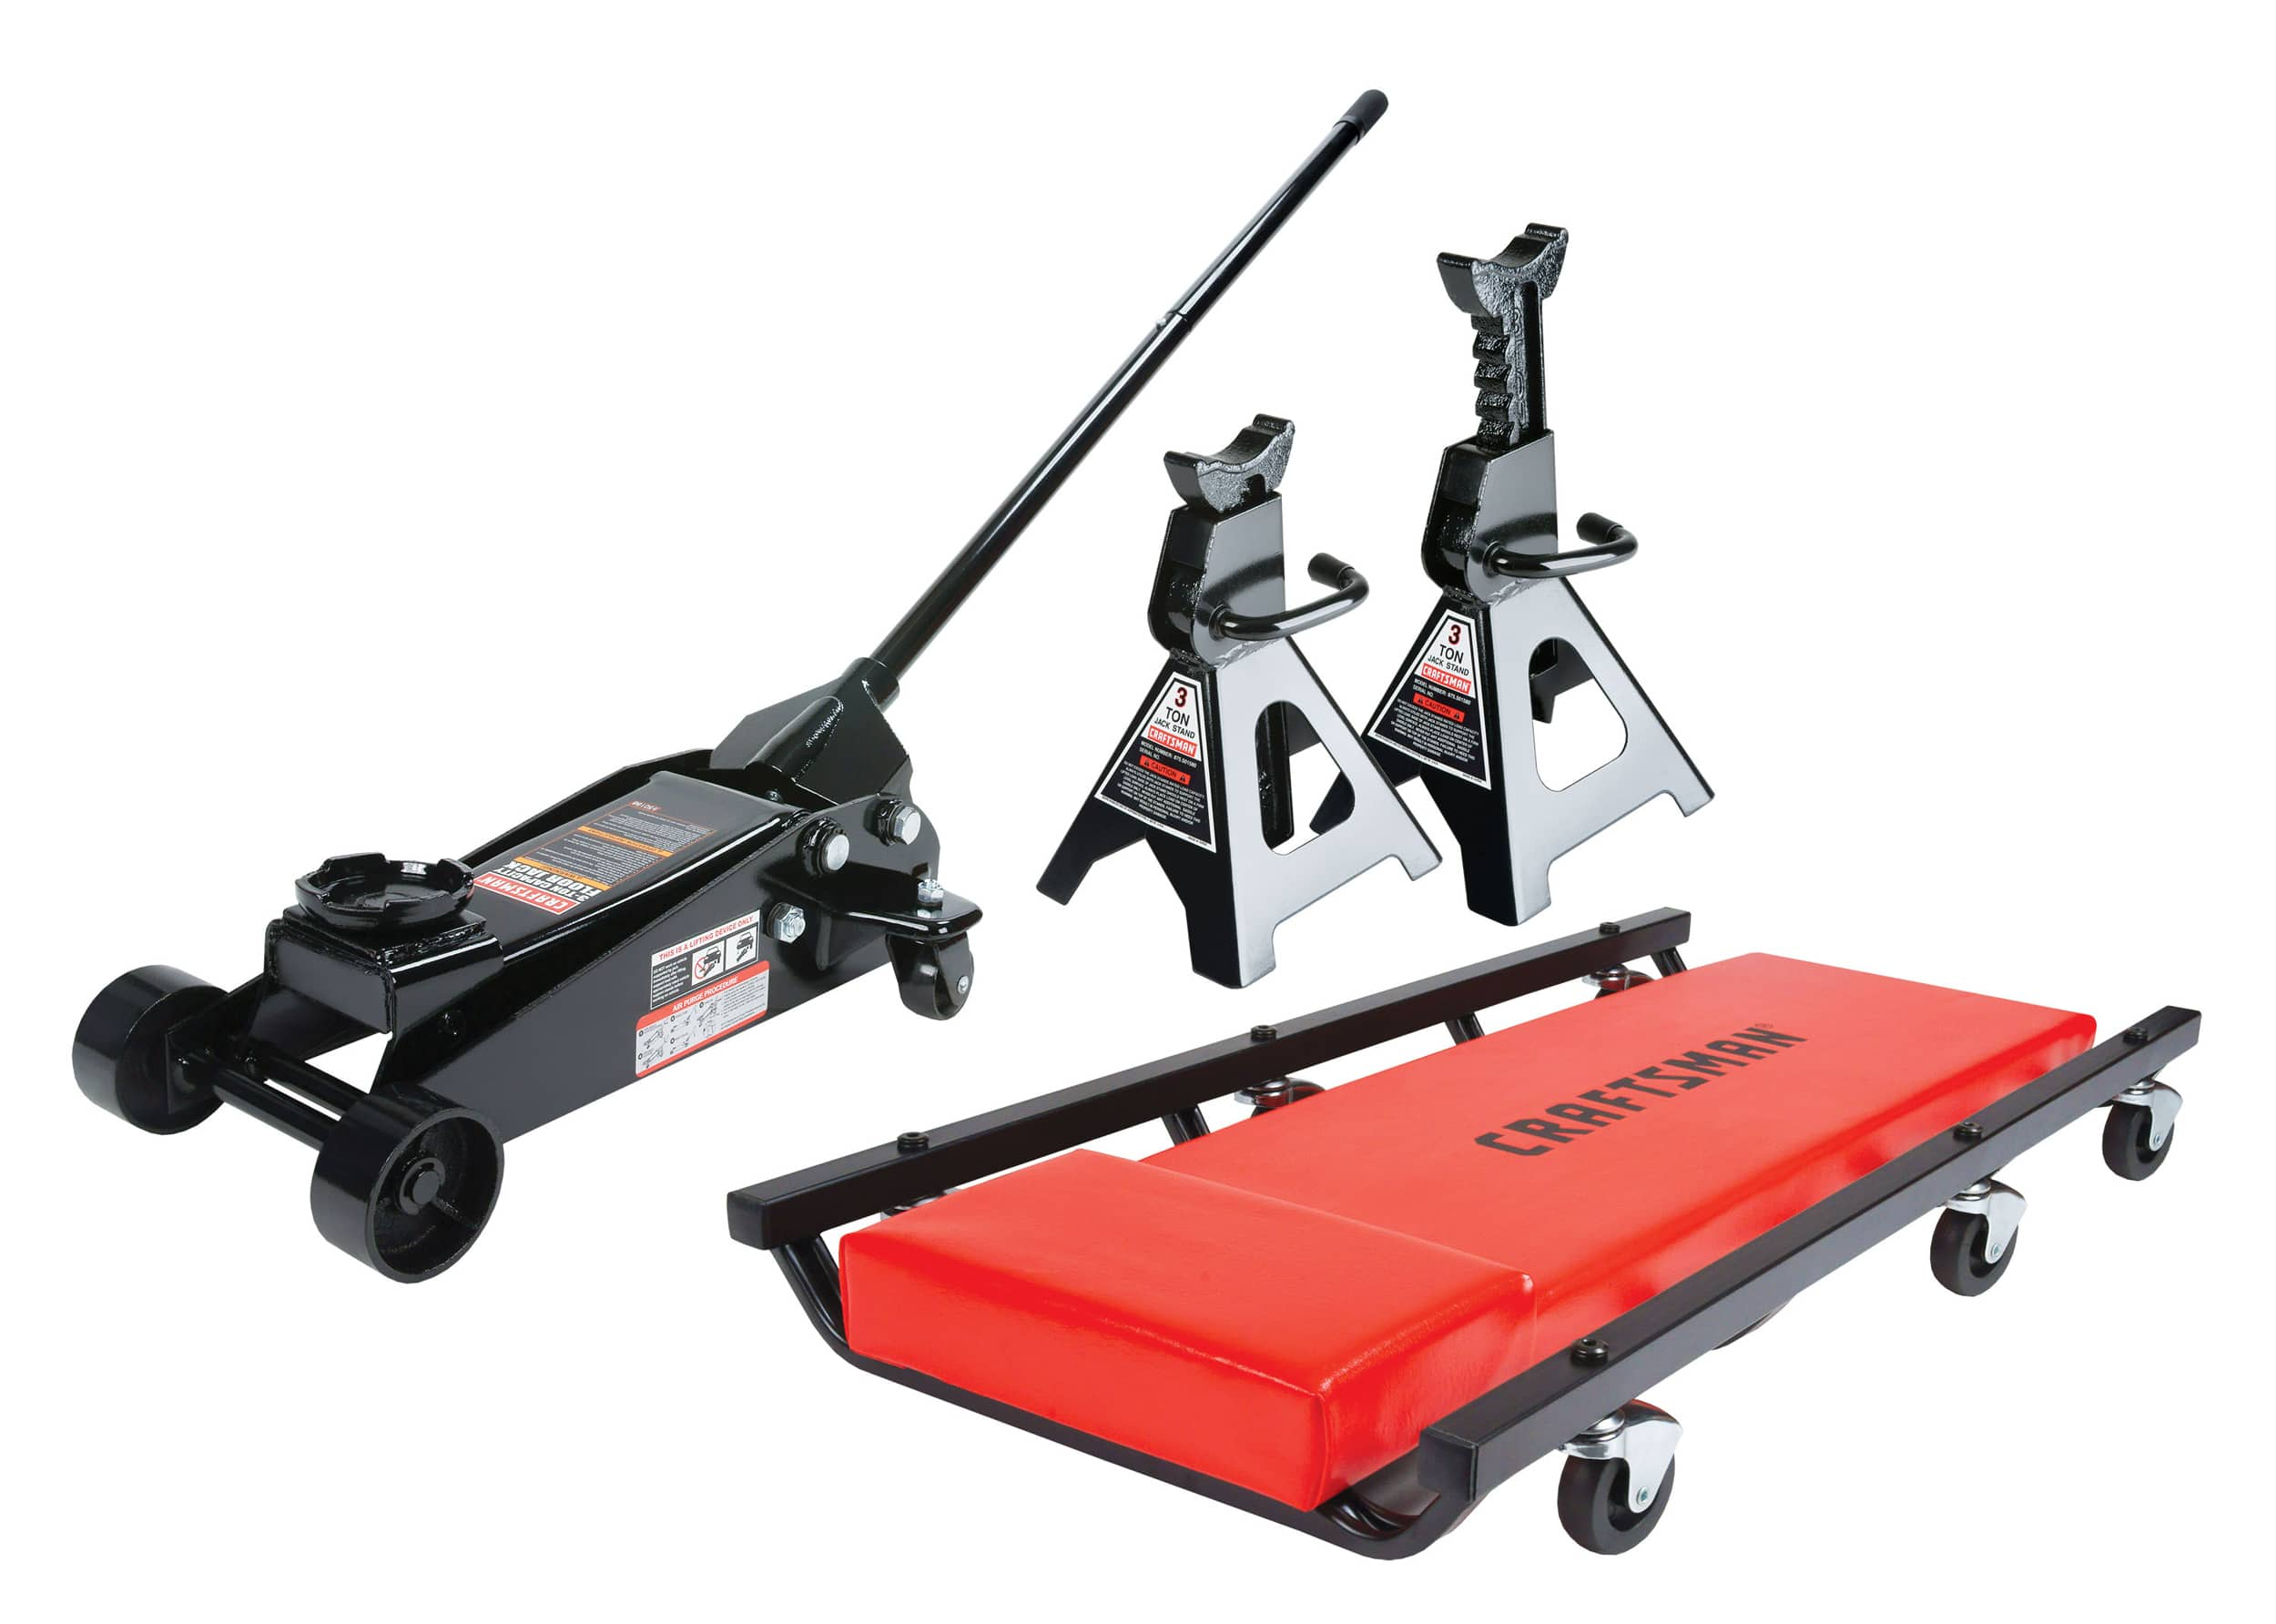 Craftsman 3 ton floor jack with jack stands and creeper set for $84.99, 2 1/4 ton floor jack set with jack stands for $47.47, 3-ton stands $20.16